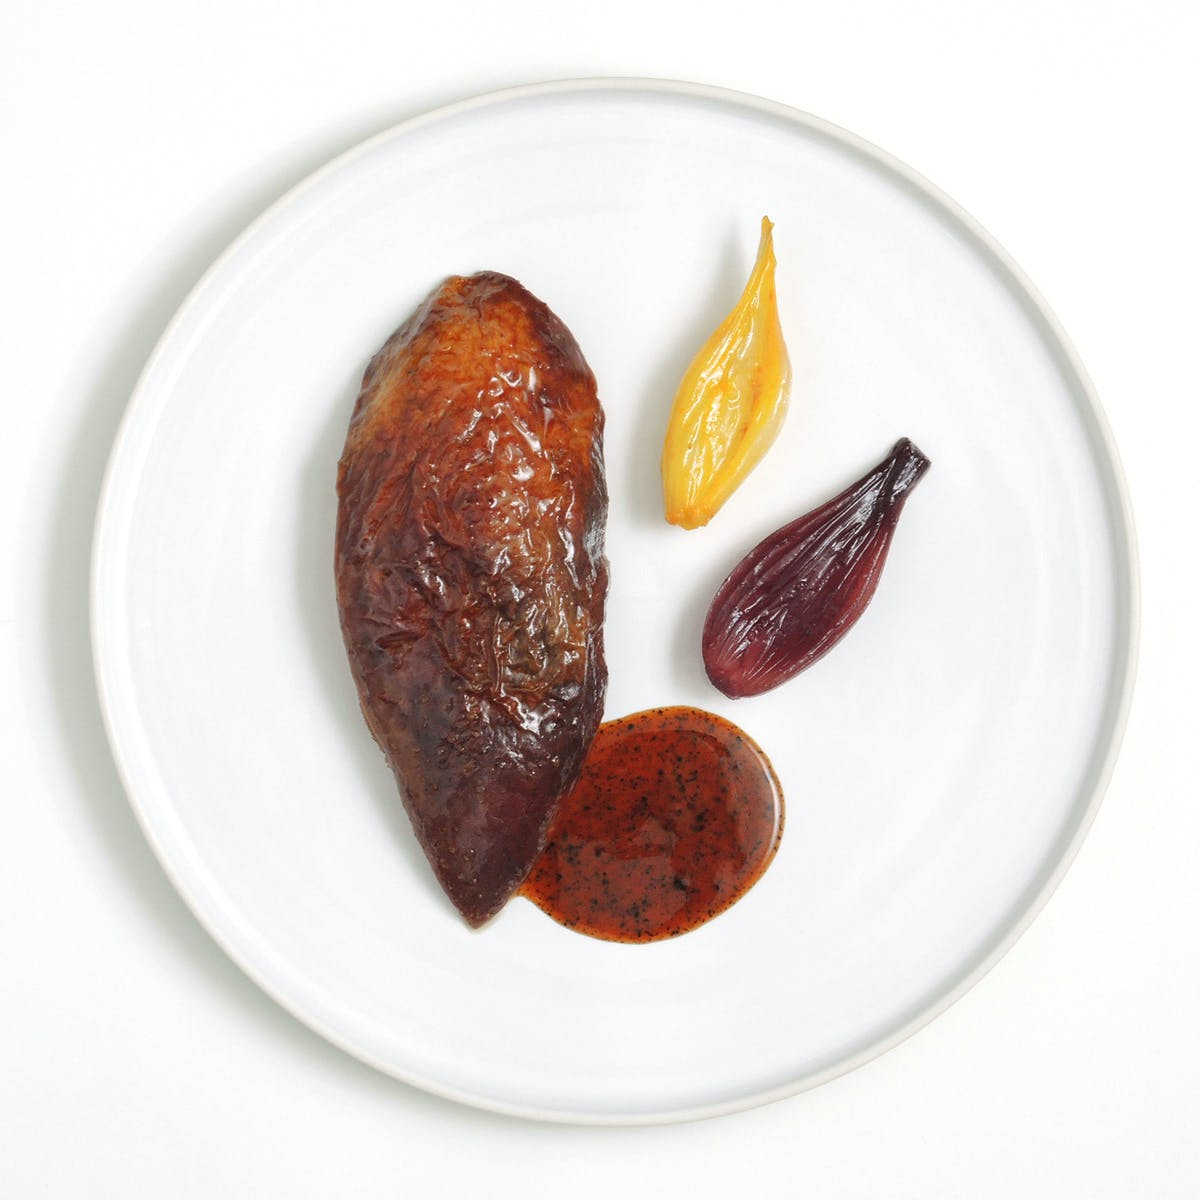 a piece of food on a plate